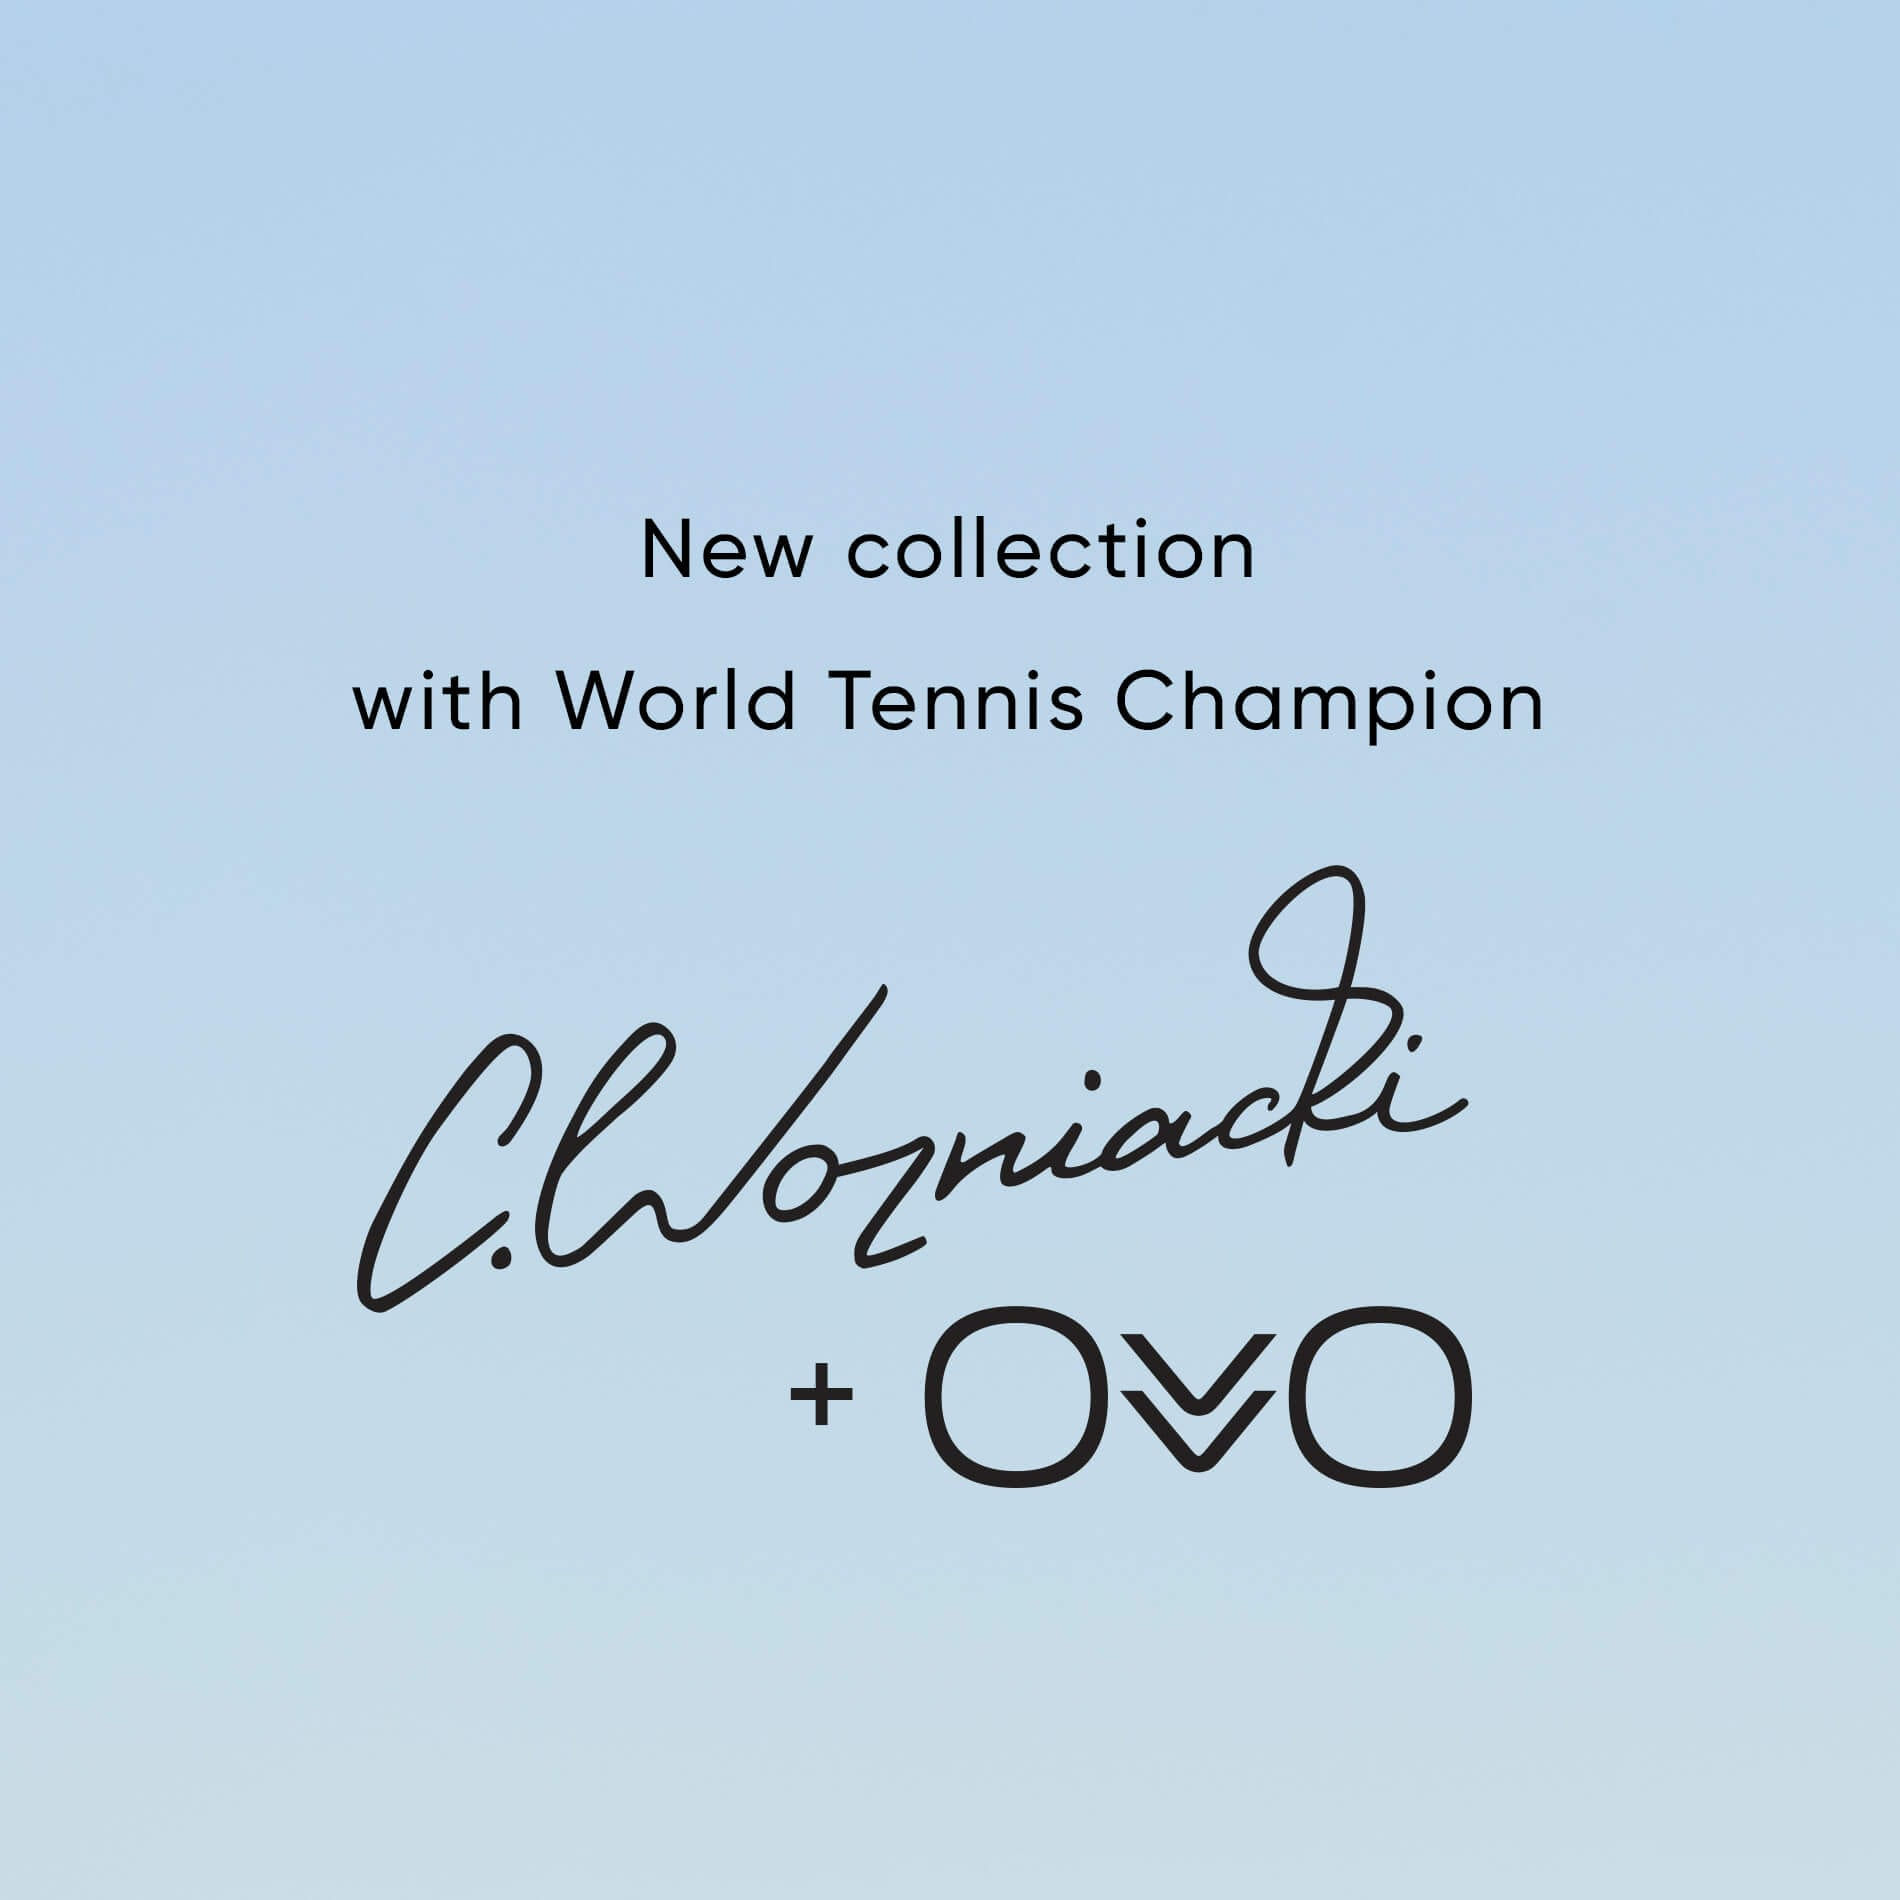 Caroline Wozniacki, OVVO Optics, Caro, Carowozniacki, glasses online, on line glasses, tennis, tennis eyewear, tennis glasses, tennis sunglasses, Australian Open, sport, durable, indestructible, sunglasses, luxury, eyewear, Sport Illustrated